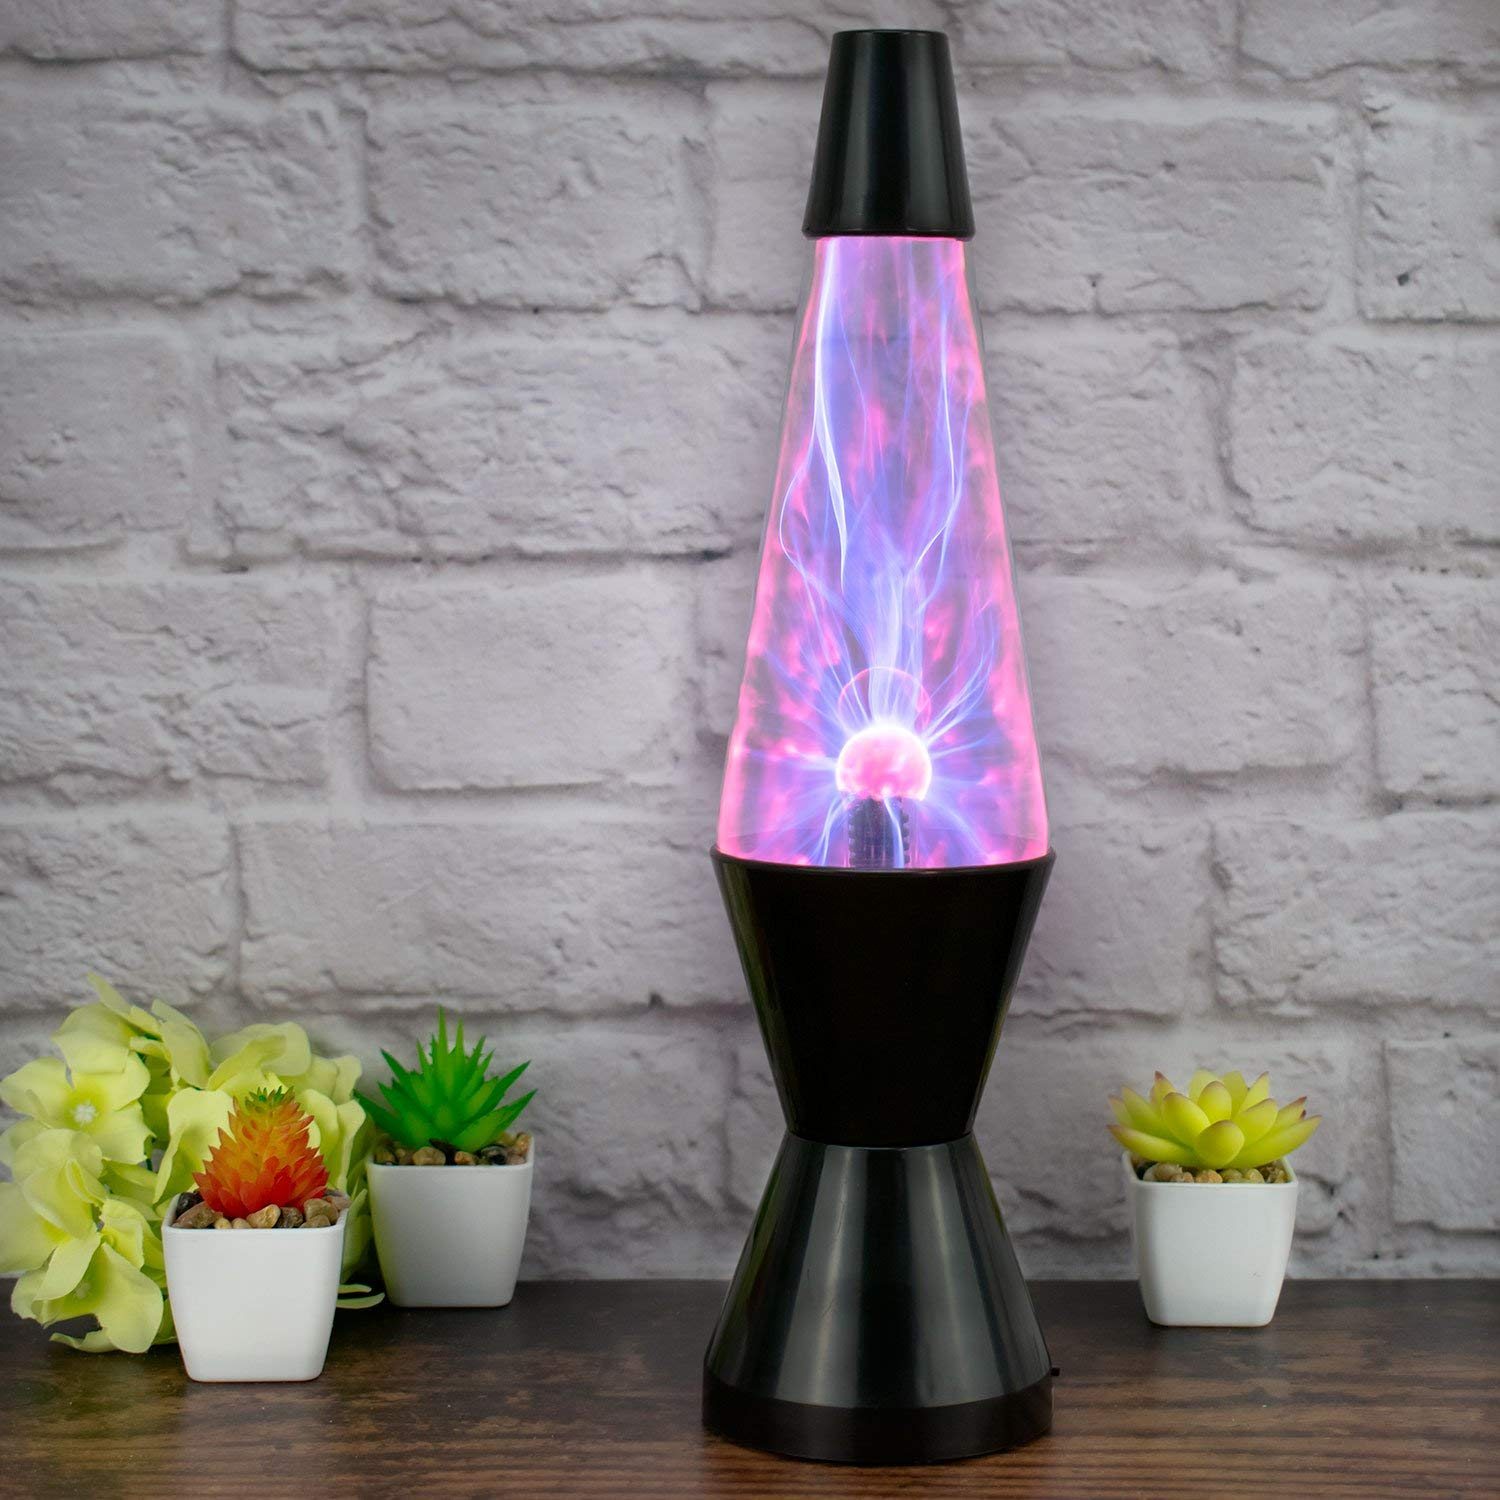 The Glowhouse Plasma Lightning Rocket Lava Lamp Style Special Effects Light Lamp Interaction (37cm H)